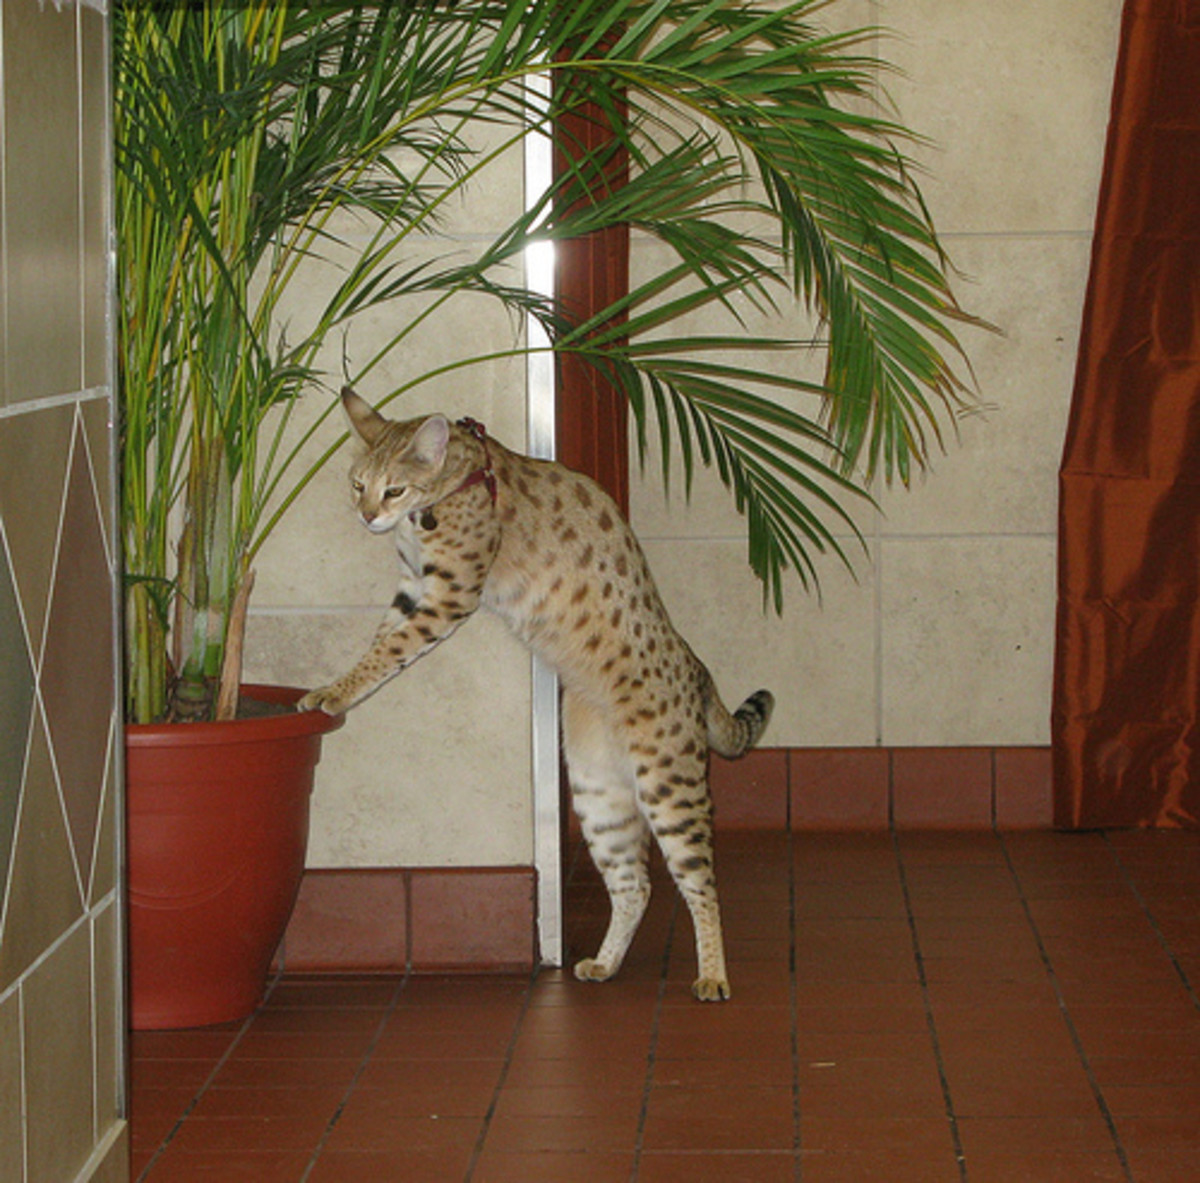 According the Guinness Book of World Records, the holder of the title World's Tallest Domestic Cat is Scarlett's Magic, who stands just over 18 inches and is owned by Lee and Kimberly Draper.  NOTE: This is a random image, not Scarlett's Magic.